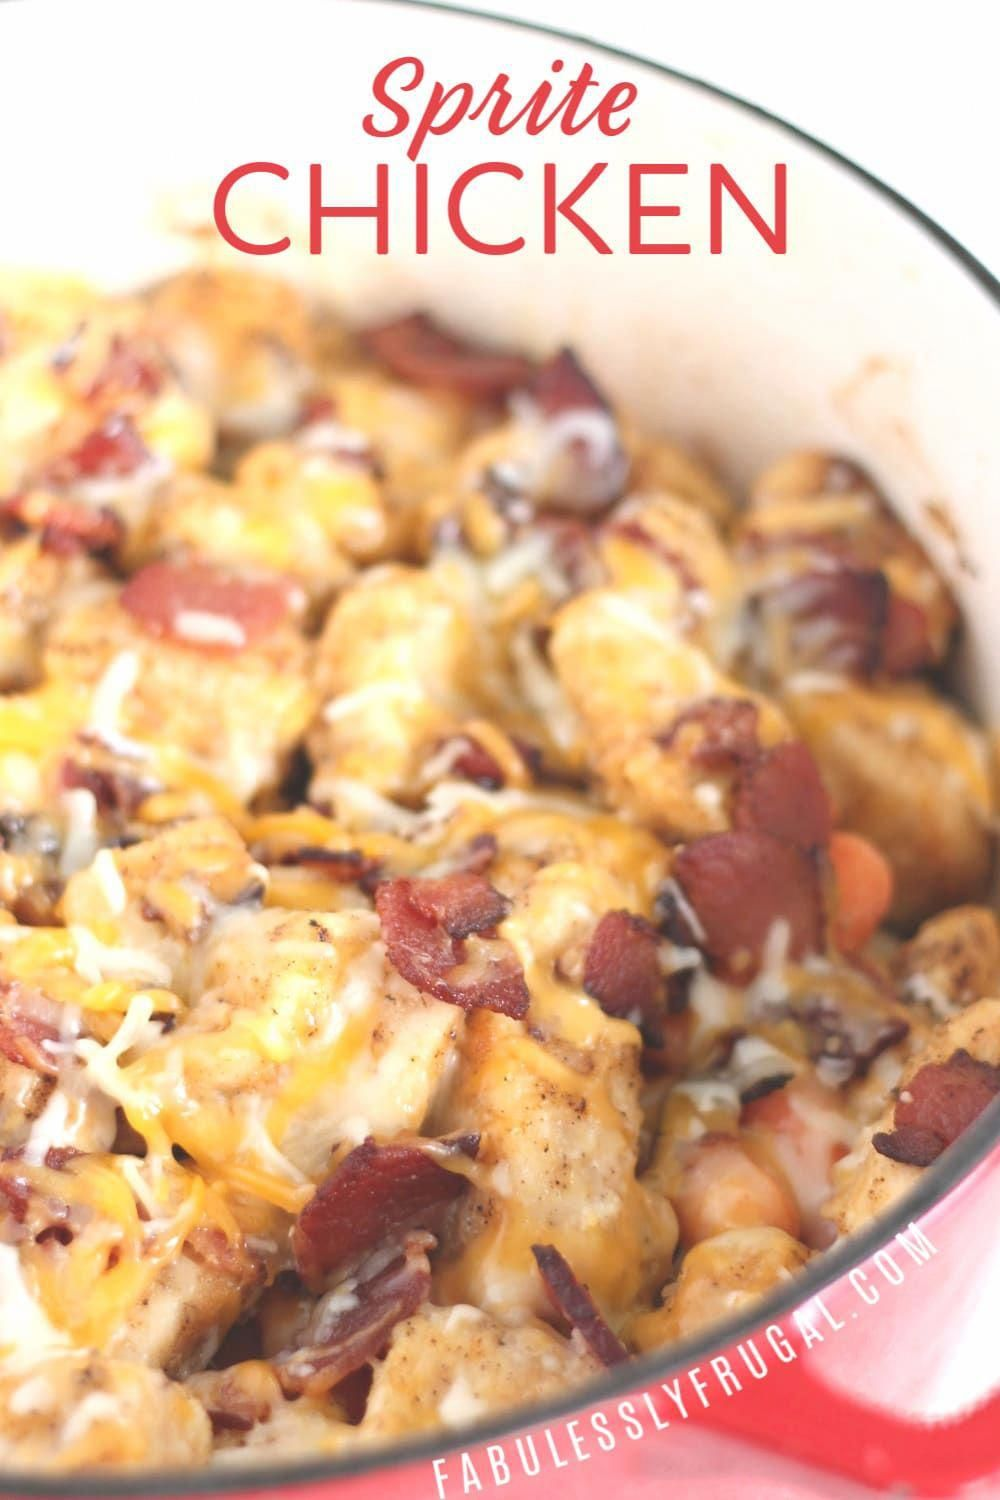 I love it when camping season rolls around. There is  nothing like the taste of campfire cooking. This is another fabulous campfire cooking recipe using dutch ovens from my friend Ryan. Of course, it can also be made in a dutch oven in your home oven too! #chicken #bacon #spritechicken #dutchoven #campfirecooking #recipe #feedacrowd #recipesilove